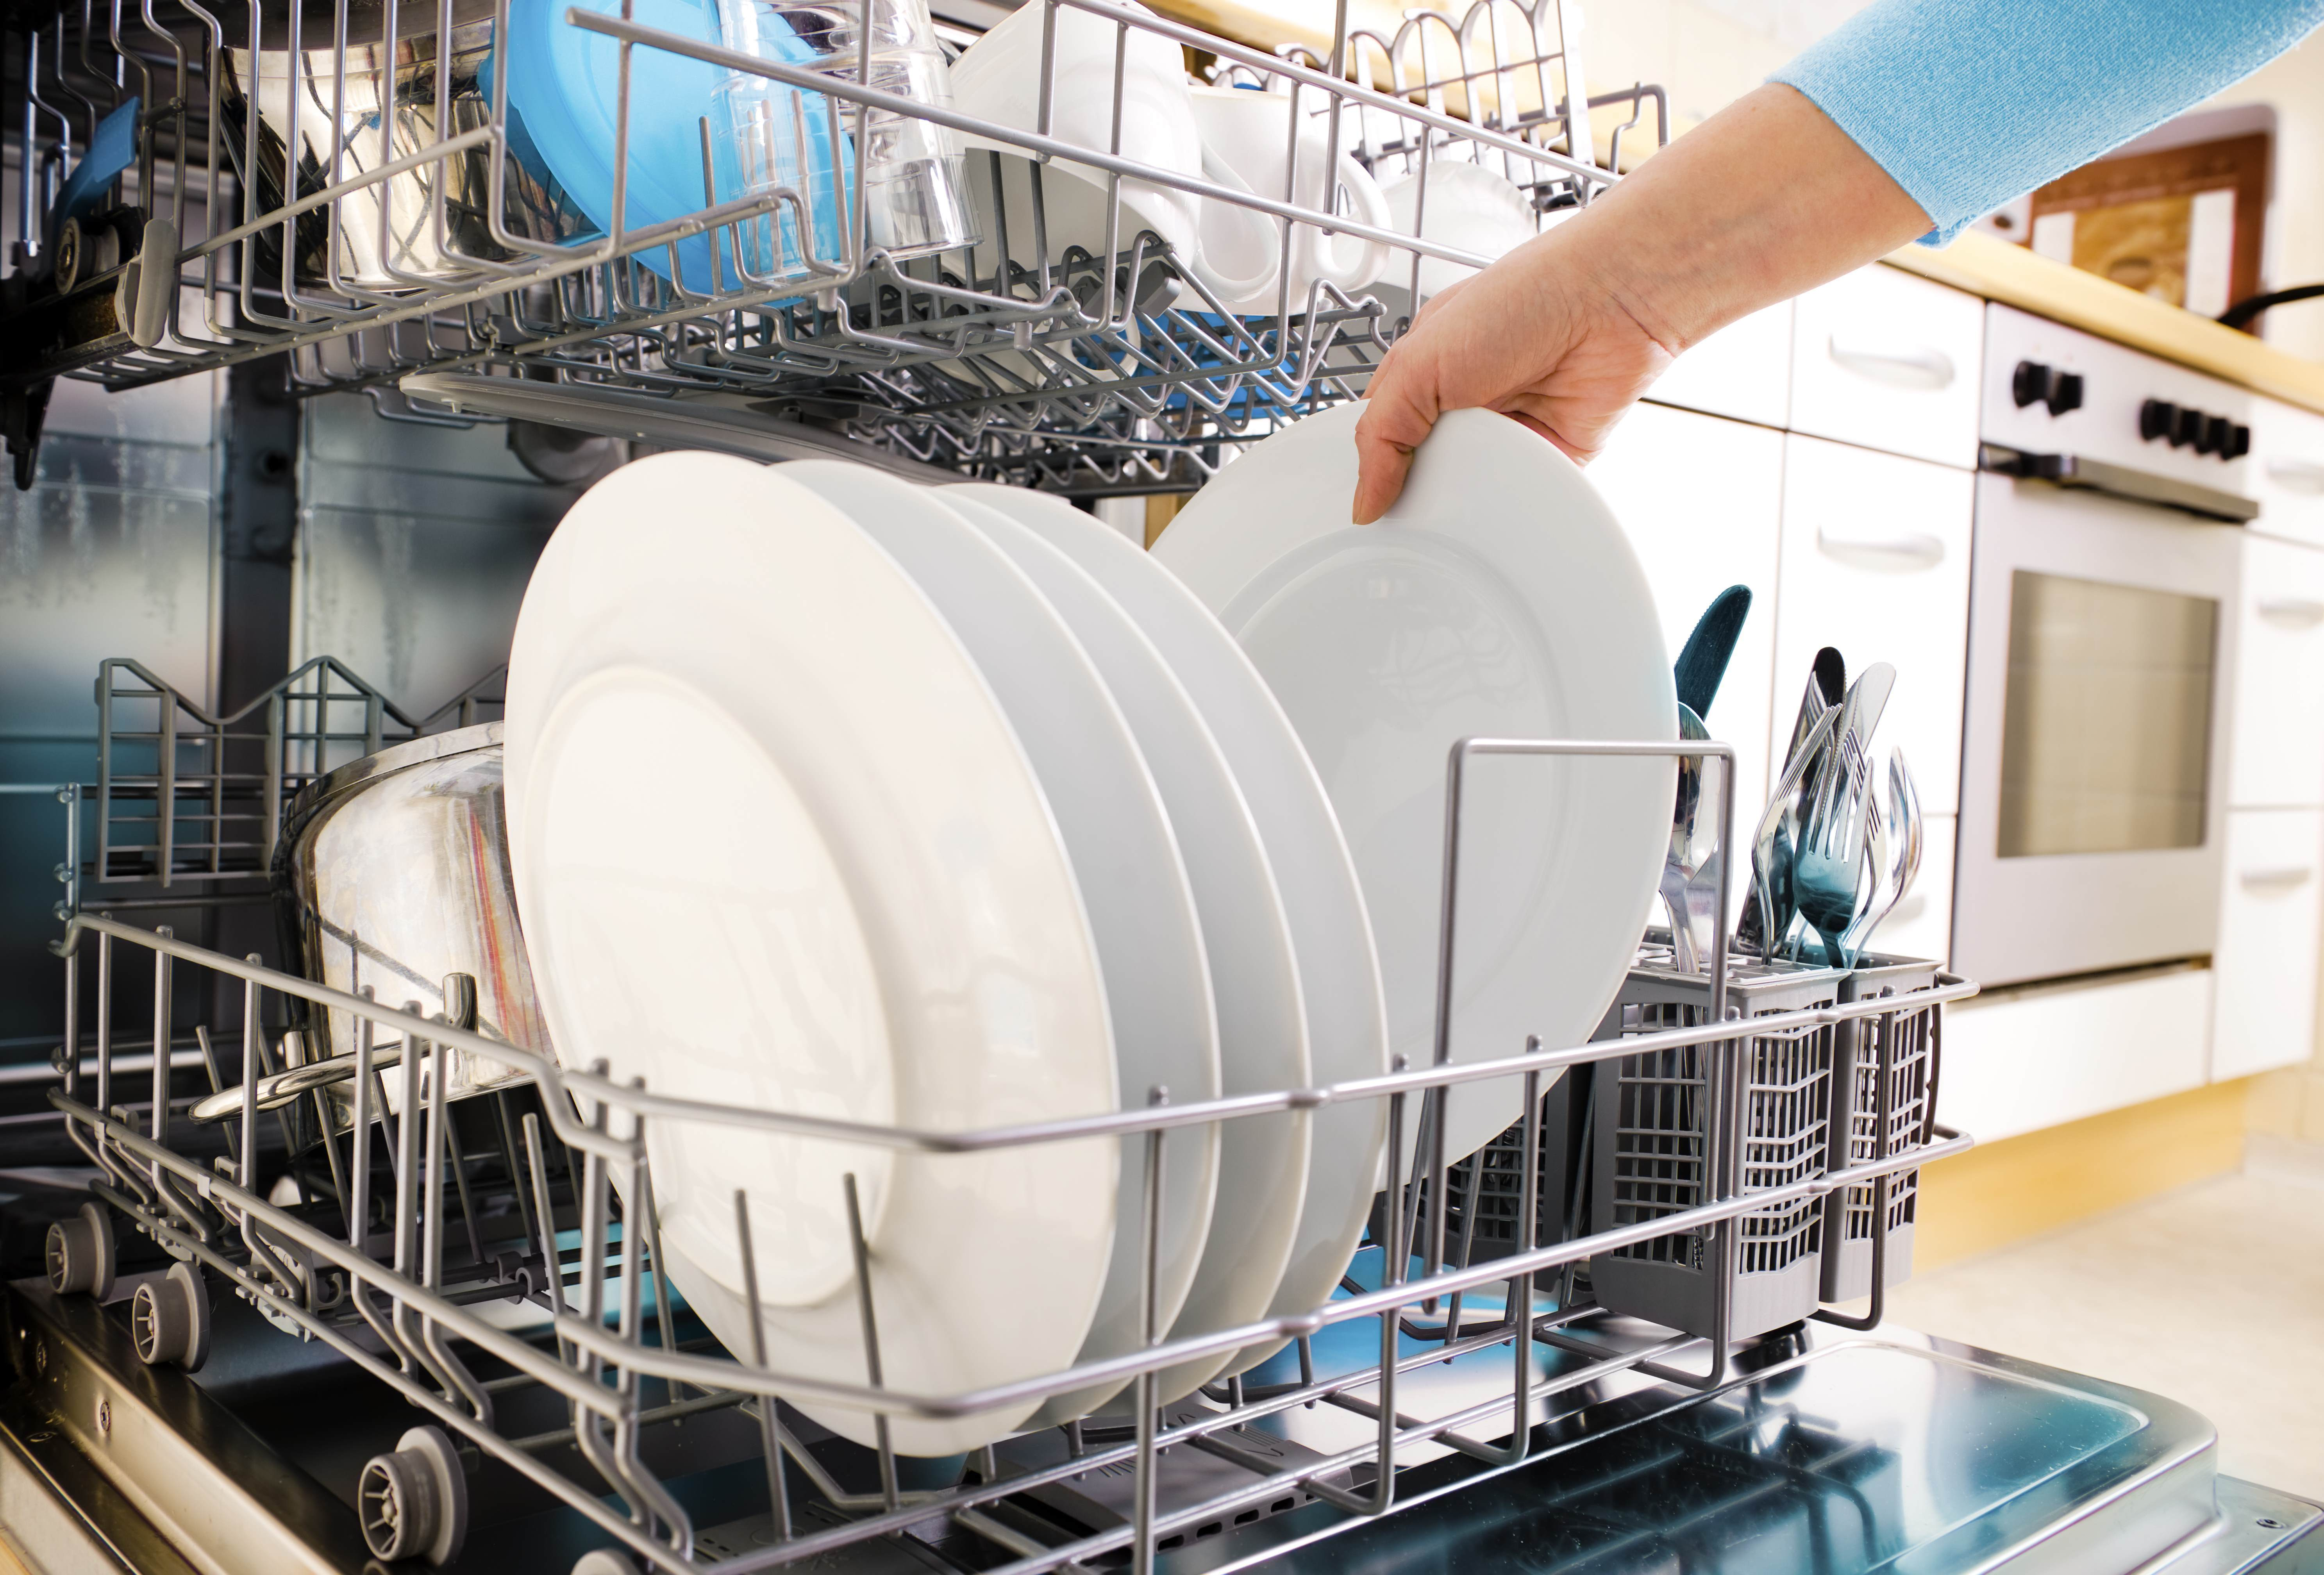 Clean plates being unloaded from a dishwasher